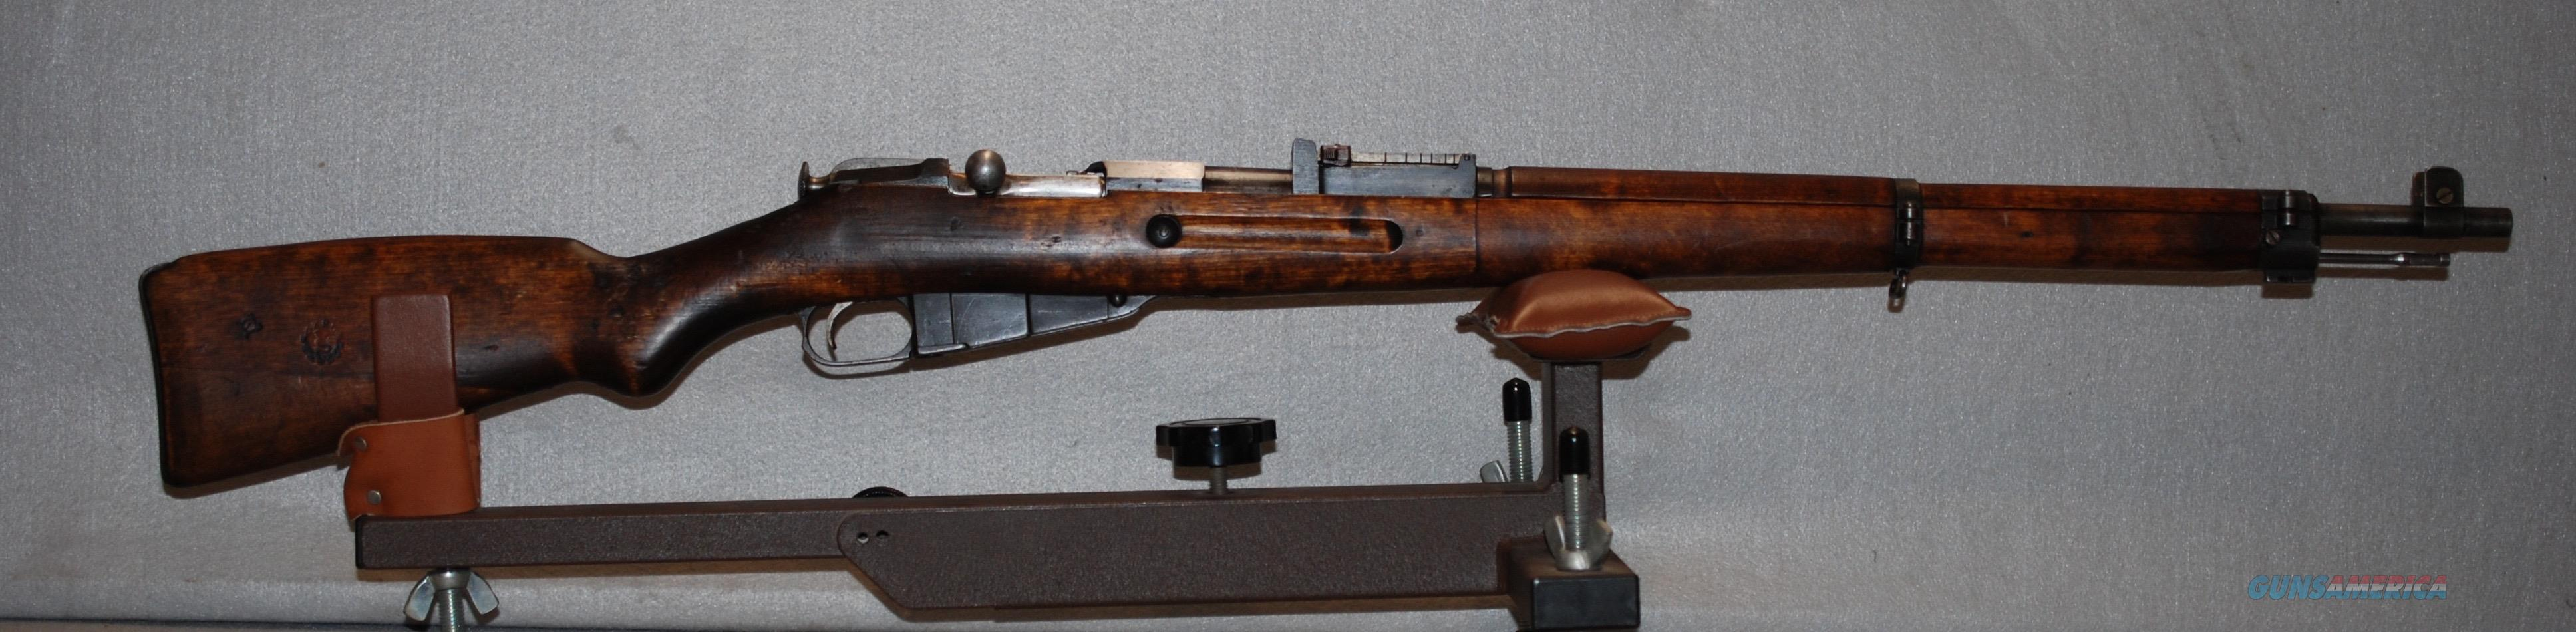 Finland M39/ aka Mosin Nagant  Guns > Rifles > Mosin-Nagant Rifles/Carbines